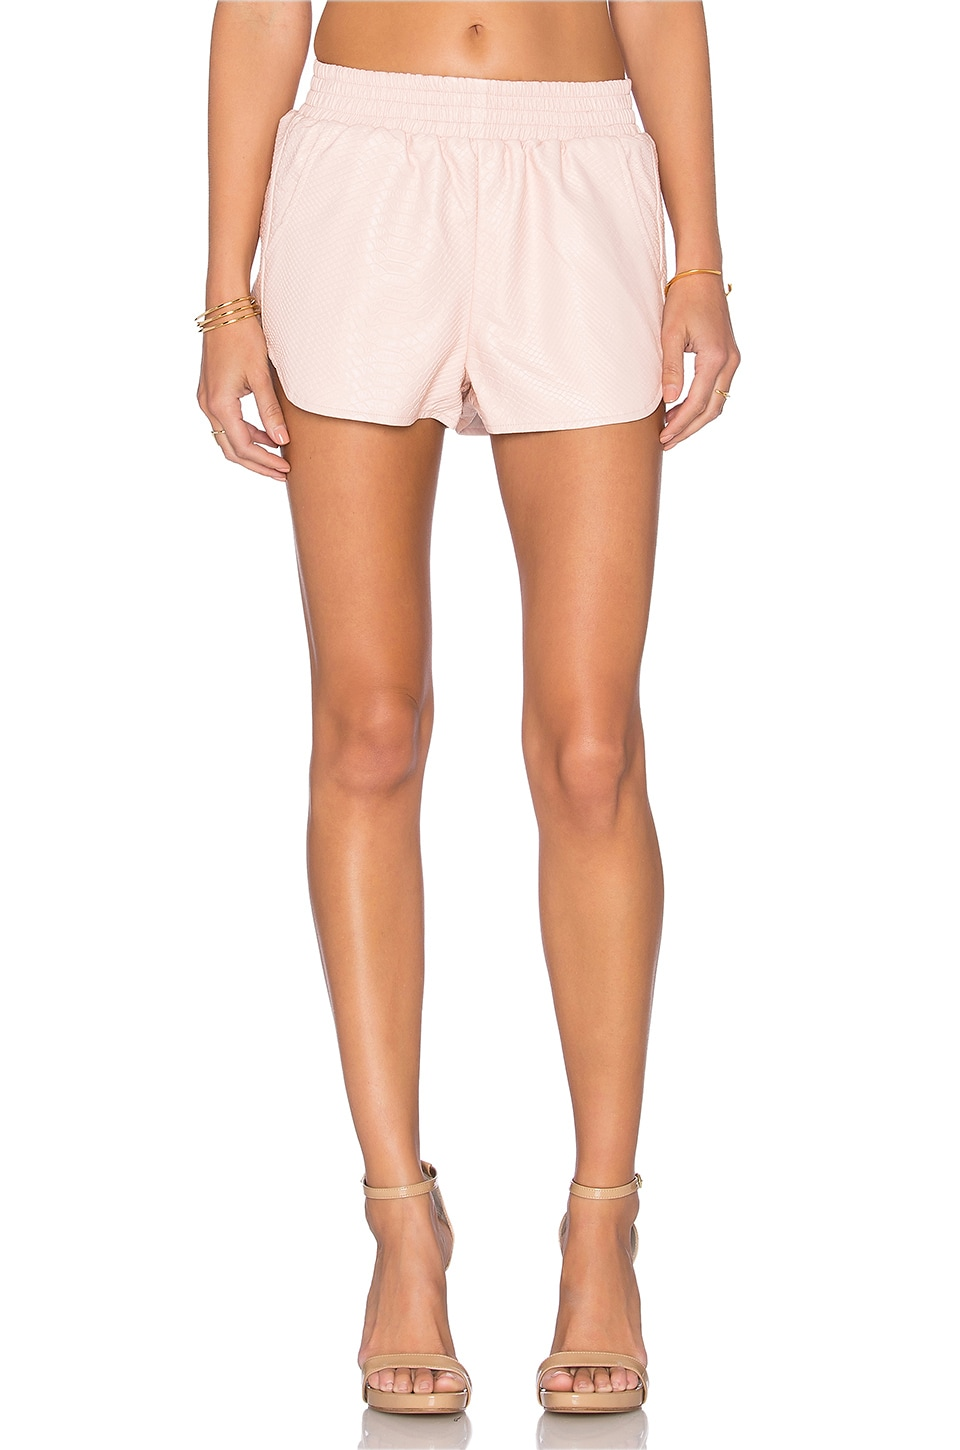 Lovers + Friends x REVOLVE Soccer Short in Nude